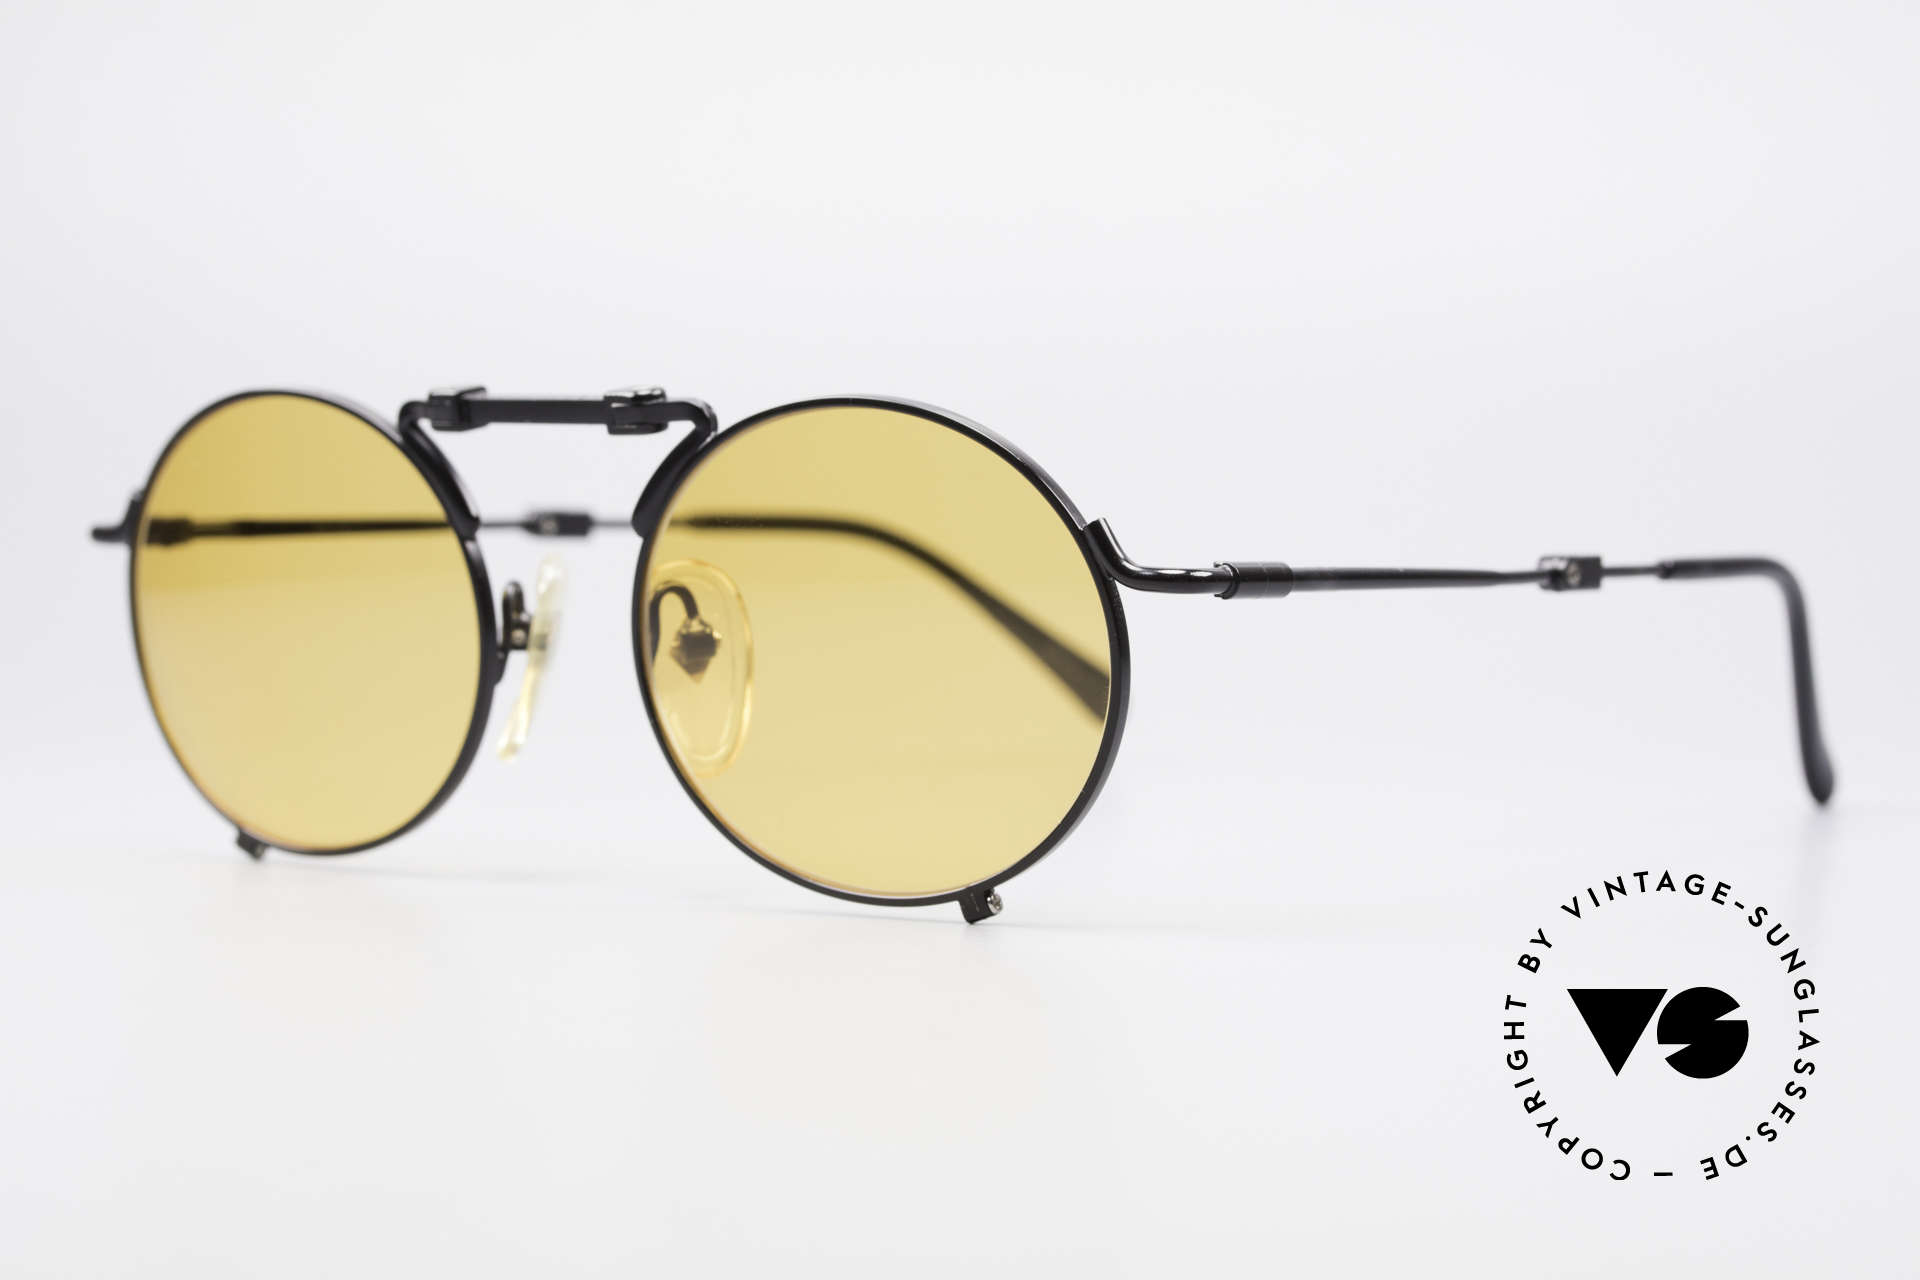 Jean Paul Gaultier 56-9171 90's Vintage Folding Sunglasses, high-end quality with many fancy design details, Made for Men and Women